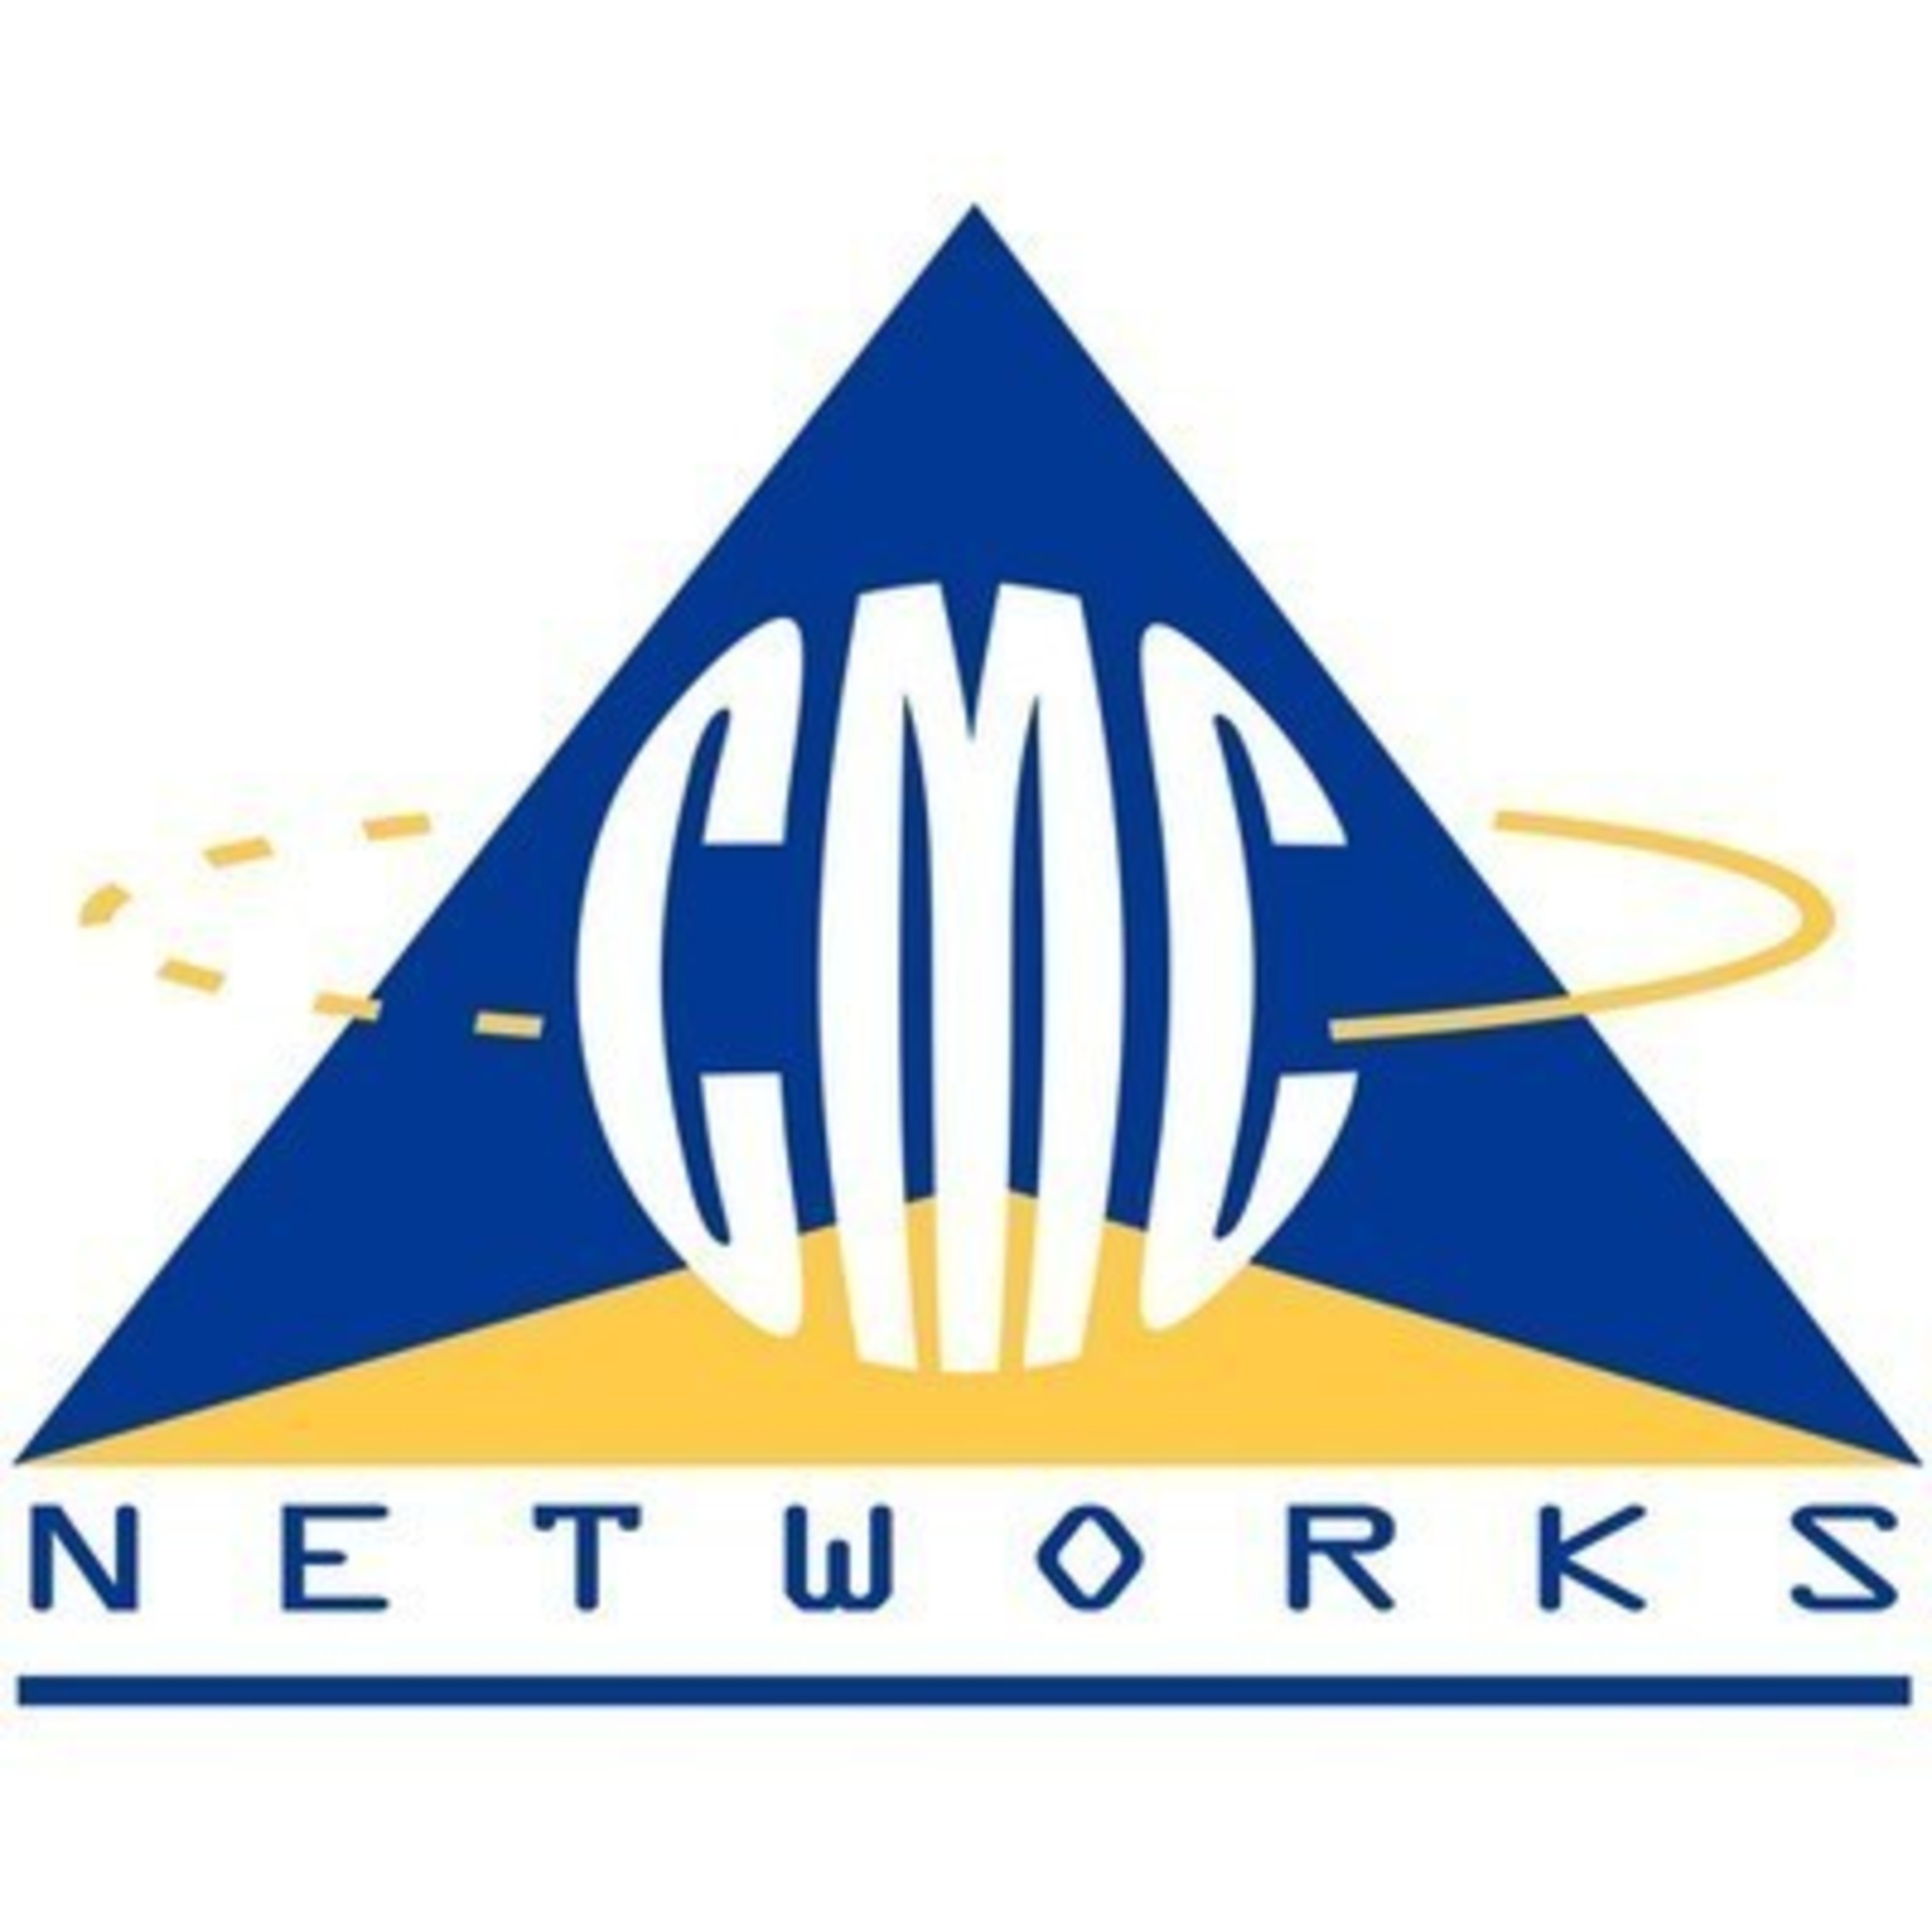 CMC Networks Announces Partnership & Interconnect With Ethio Telecom